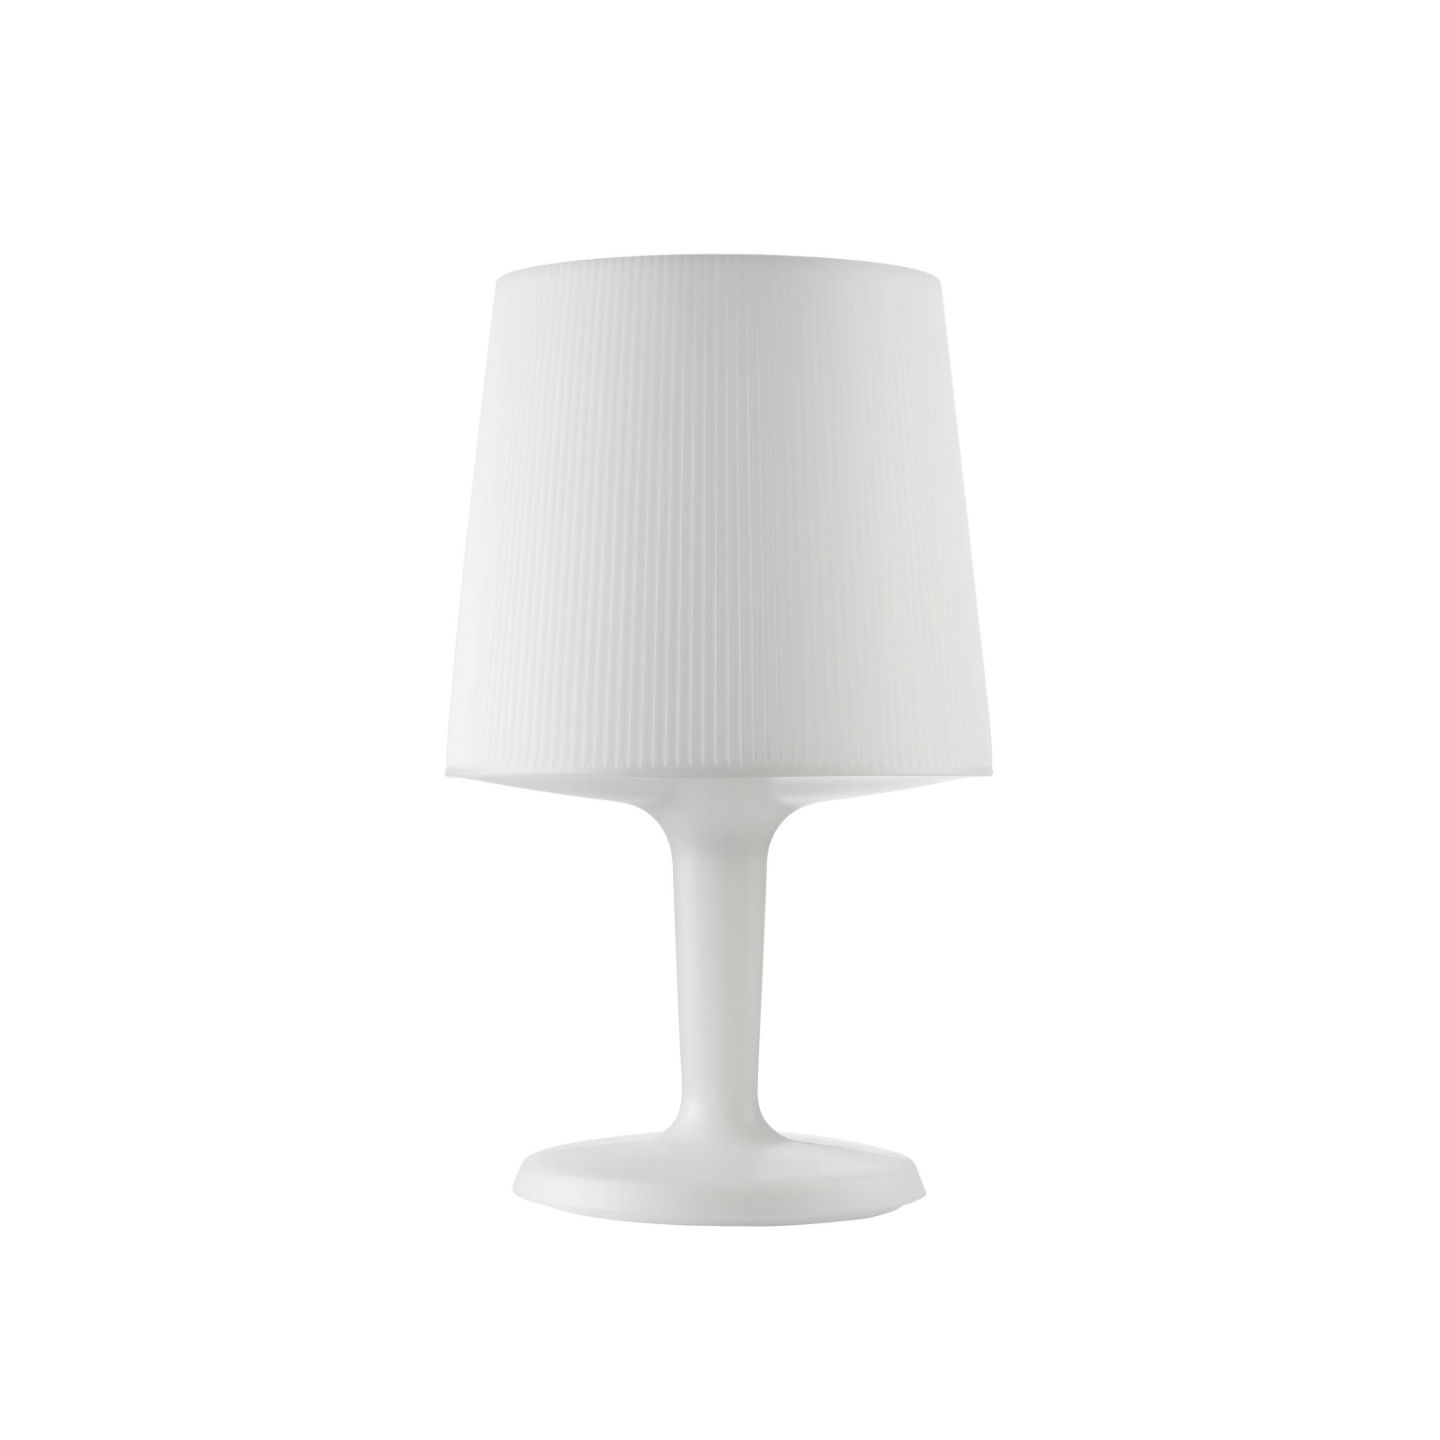 Inout Table Lamp Small of indoor white